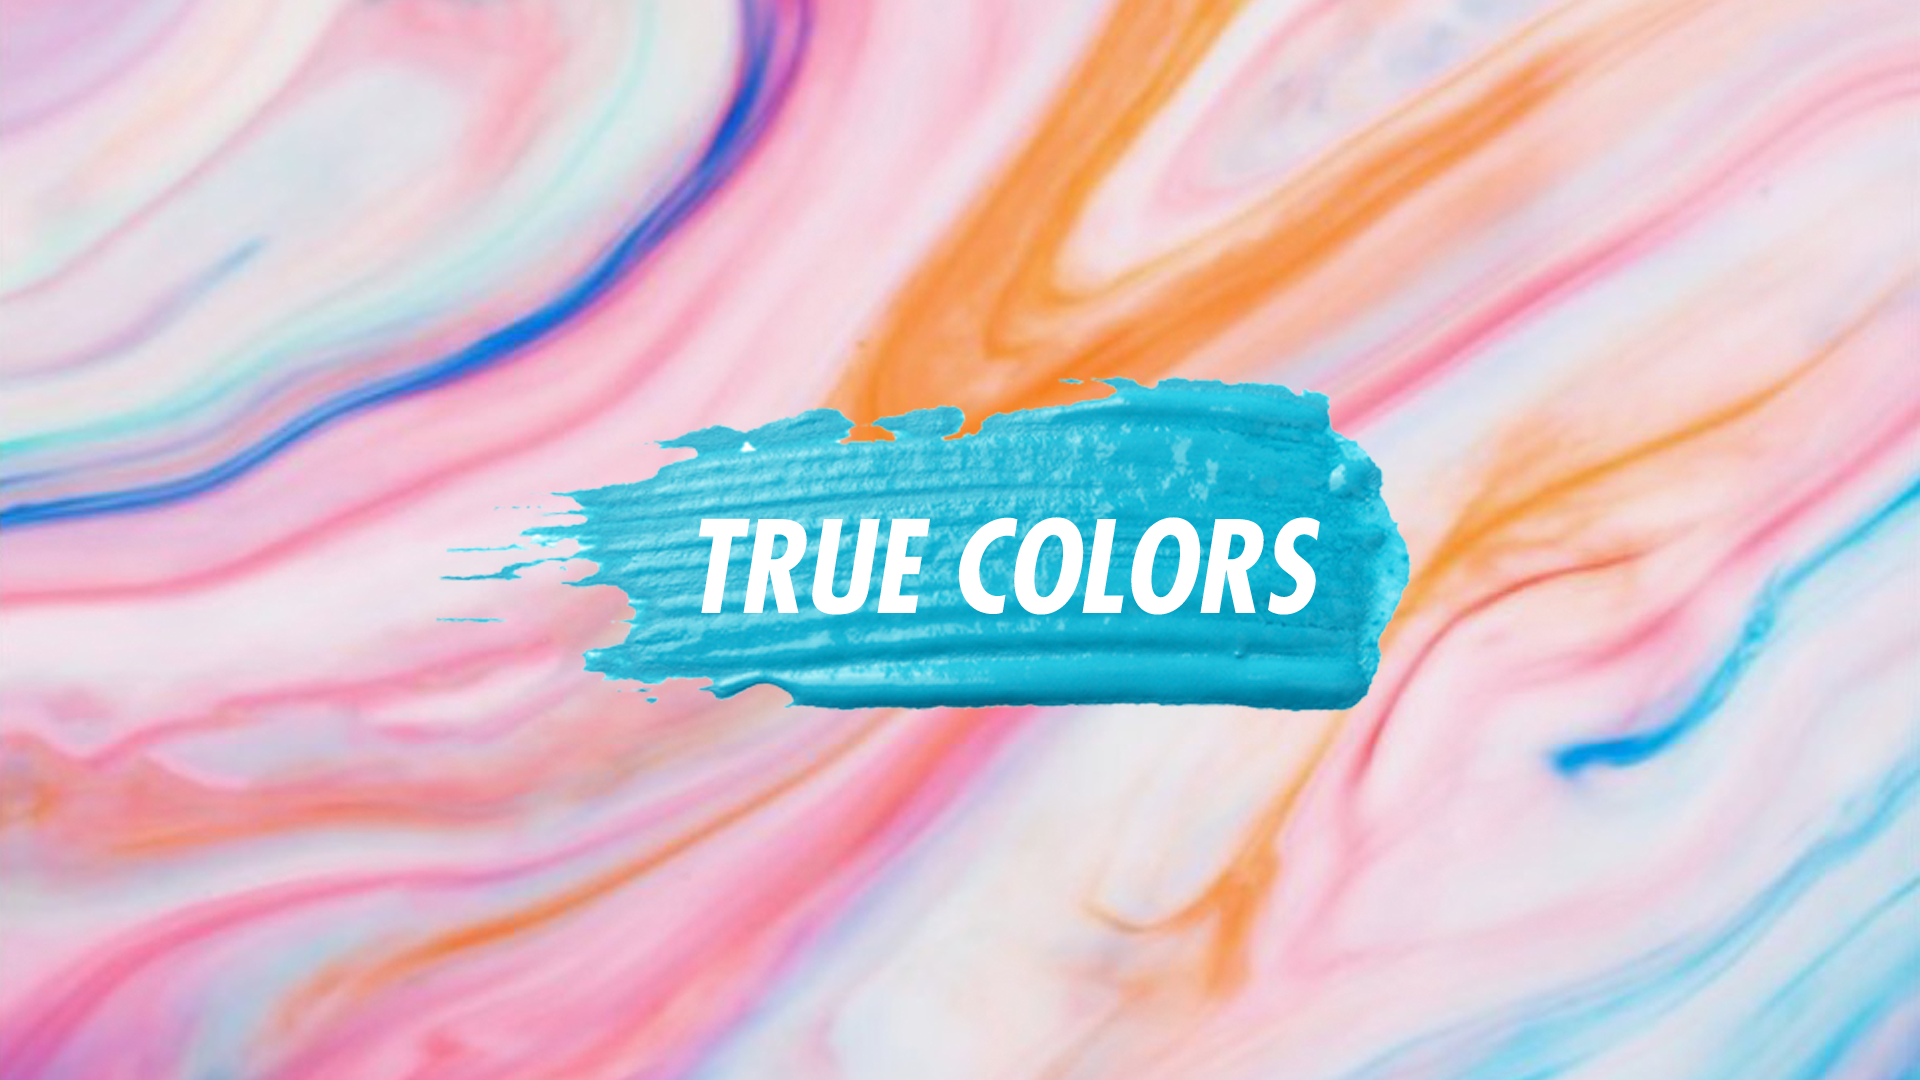 true colors HD.png